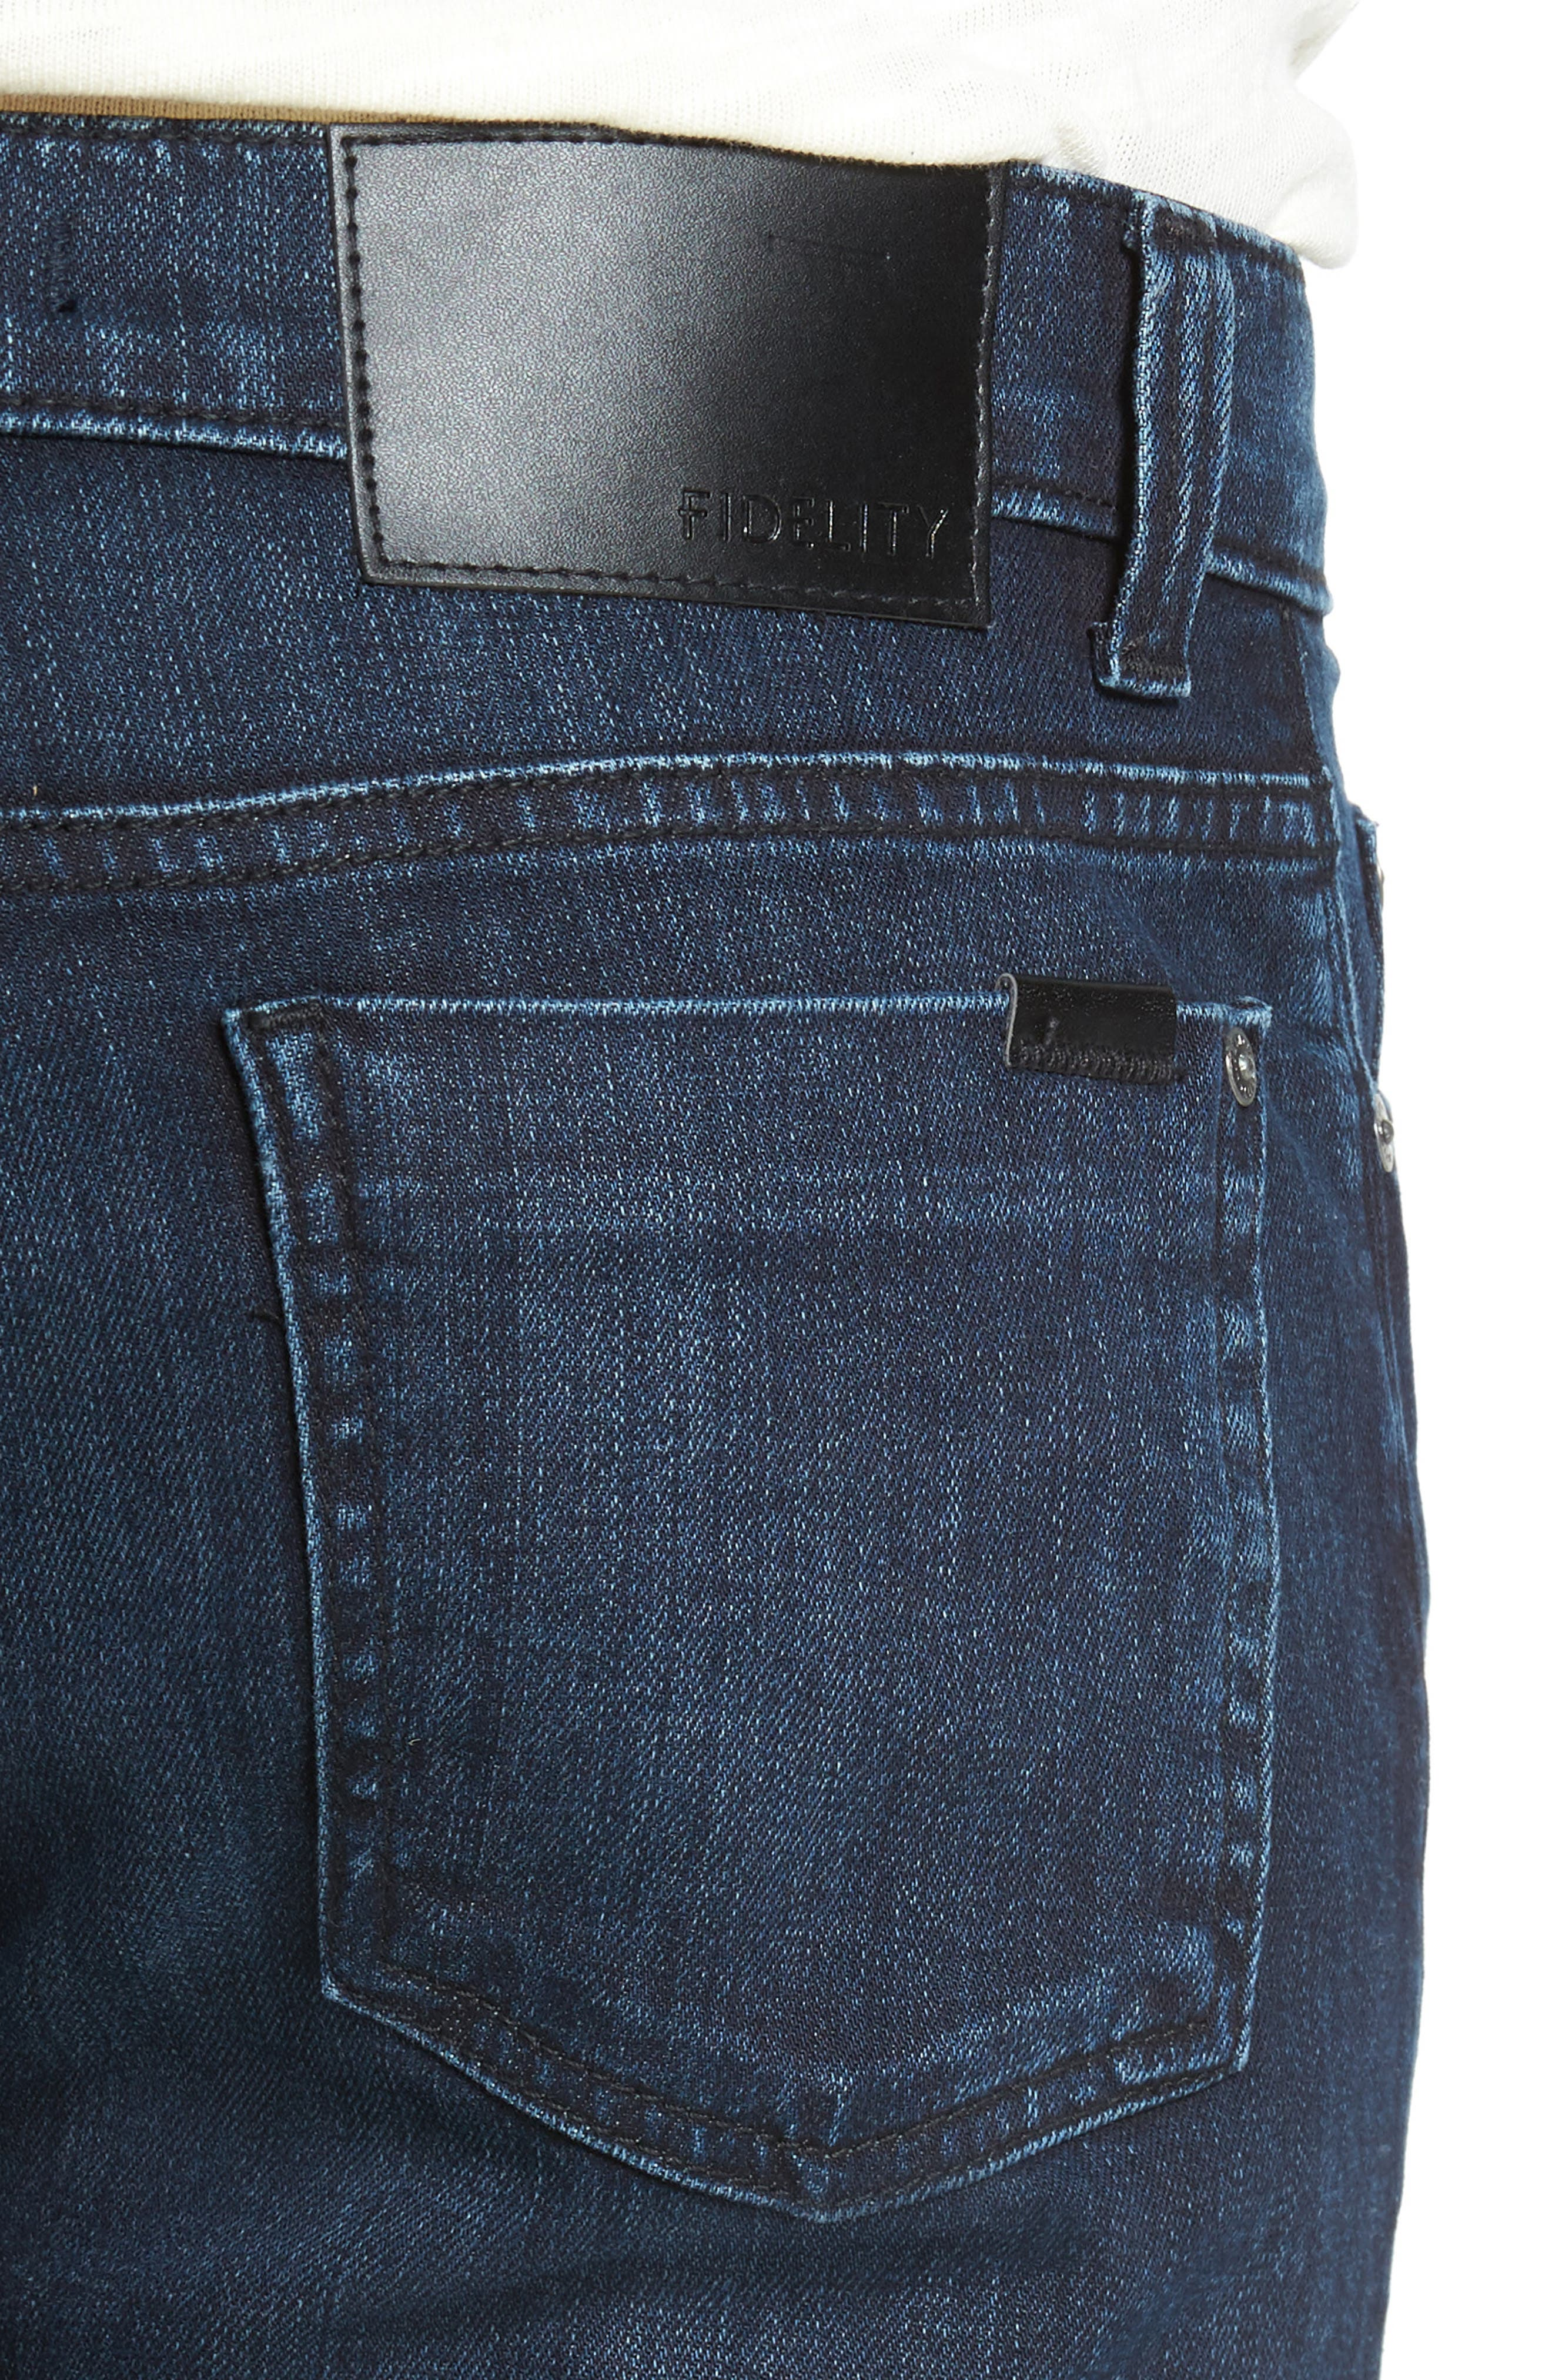 5011 Relaxed Fit Jeans,                             Alternate thumbnail 4, color,                             400